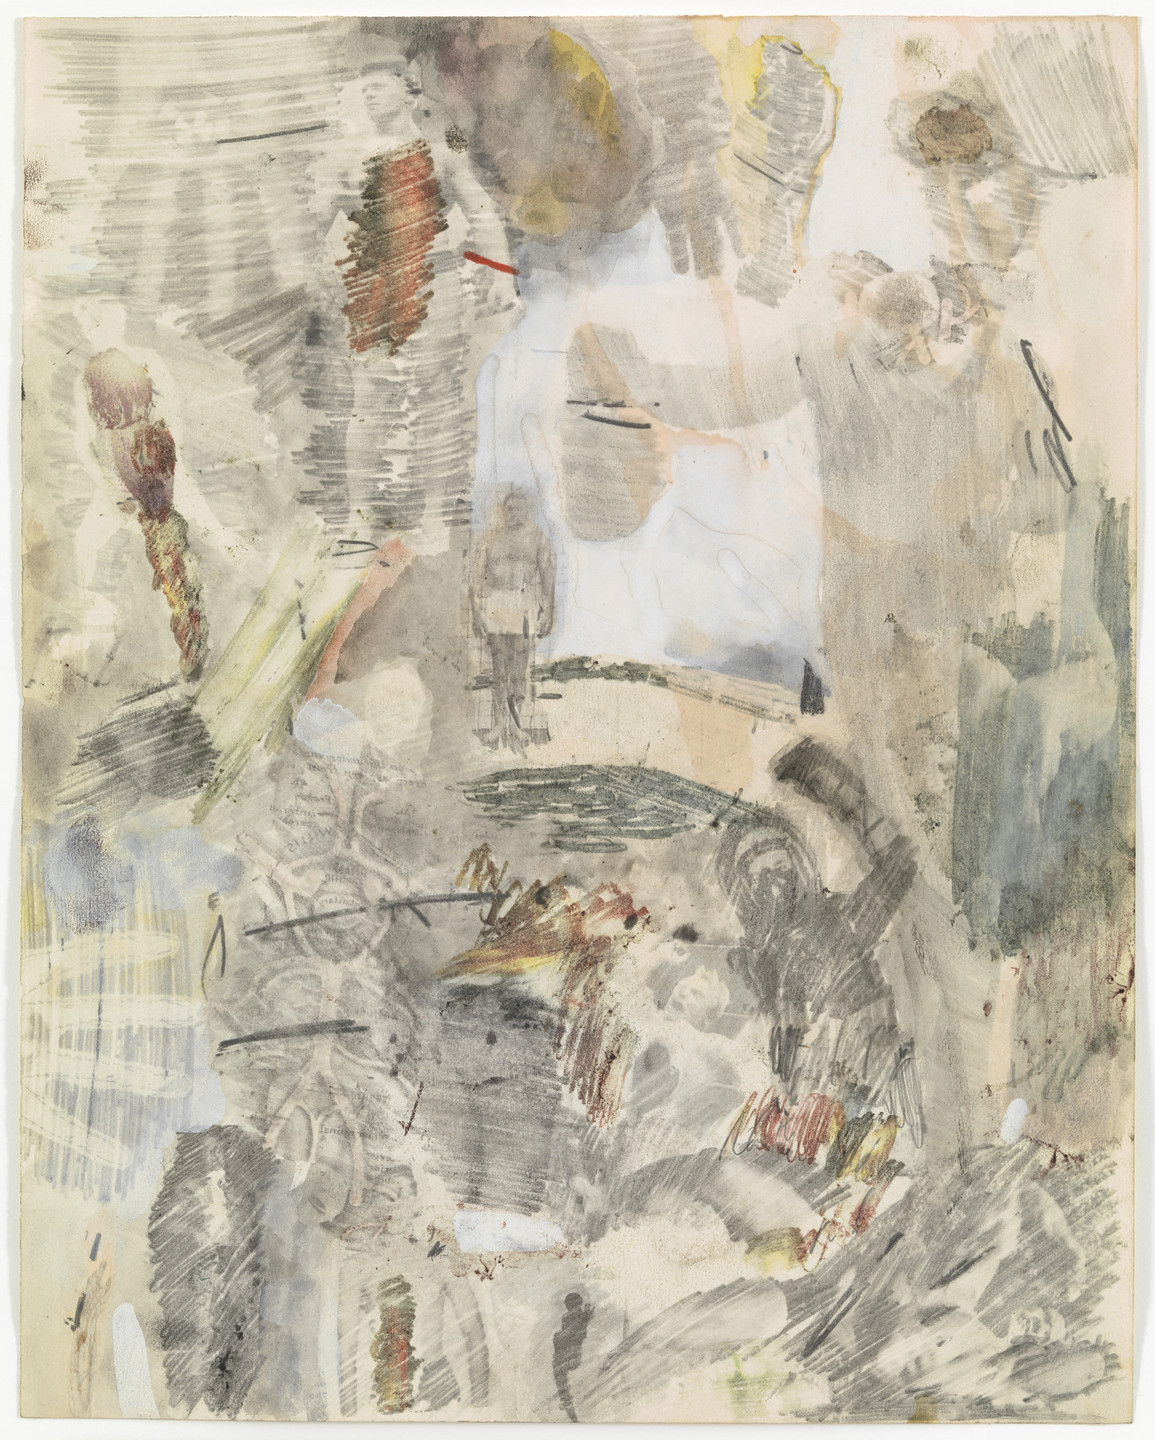 Robert Rauschenberg. Canto XXVIII: Circle Eight, Bolgia 9, The Sowers of Discord: The Sowers of Religious and Political Discord Between Kinsmen from the series Thirty-Four Illustrations for Dante's Inferno. (1959-60)